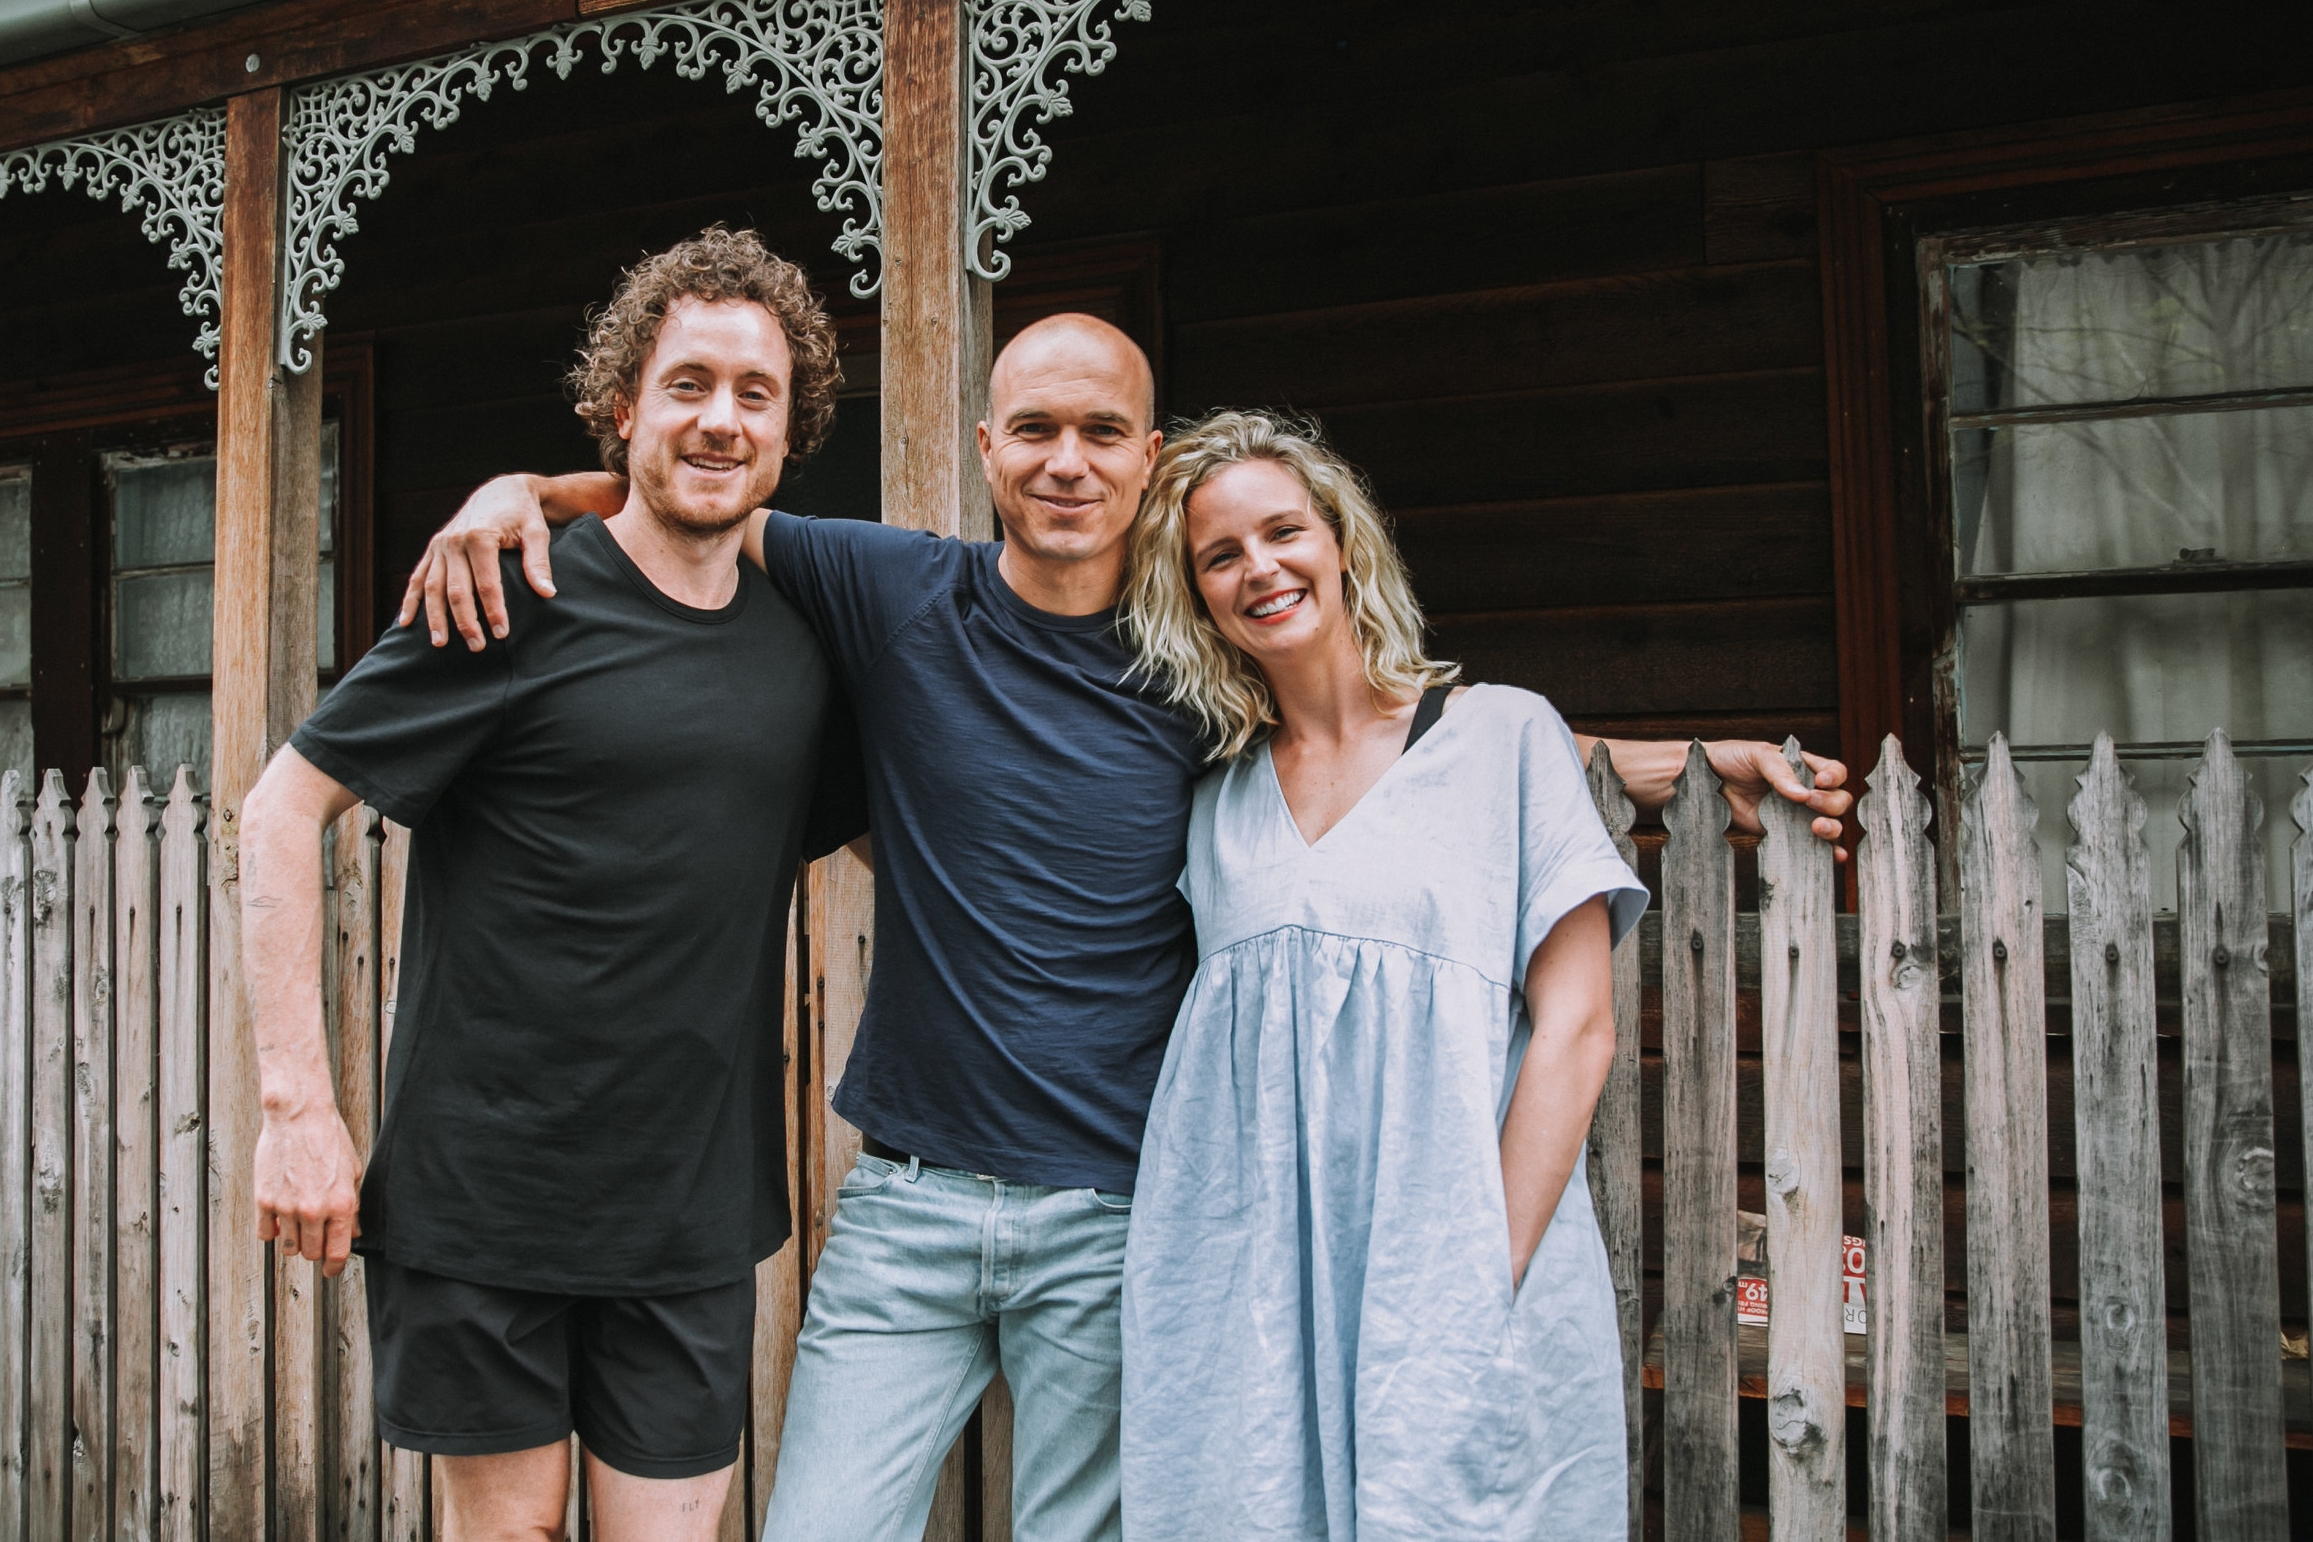 """- In 2019 we will be offered two 200 hour trainings. One in Melbourne and one in Torquay. Both with a retreat in Byron Bay.Torquay Program: Started in May 2019Melbourne Program: Starts in October 2019Yoga Alliance Certified. Places are strictly limited. If you would like to be placed on the waitlist for Melbourne 2019 or be one of the first to know the dates for 2020 please register your interest below and the team will get in contact.""""I carry the experience with me every single day"""""""